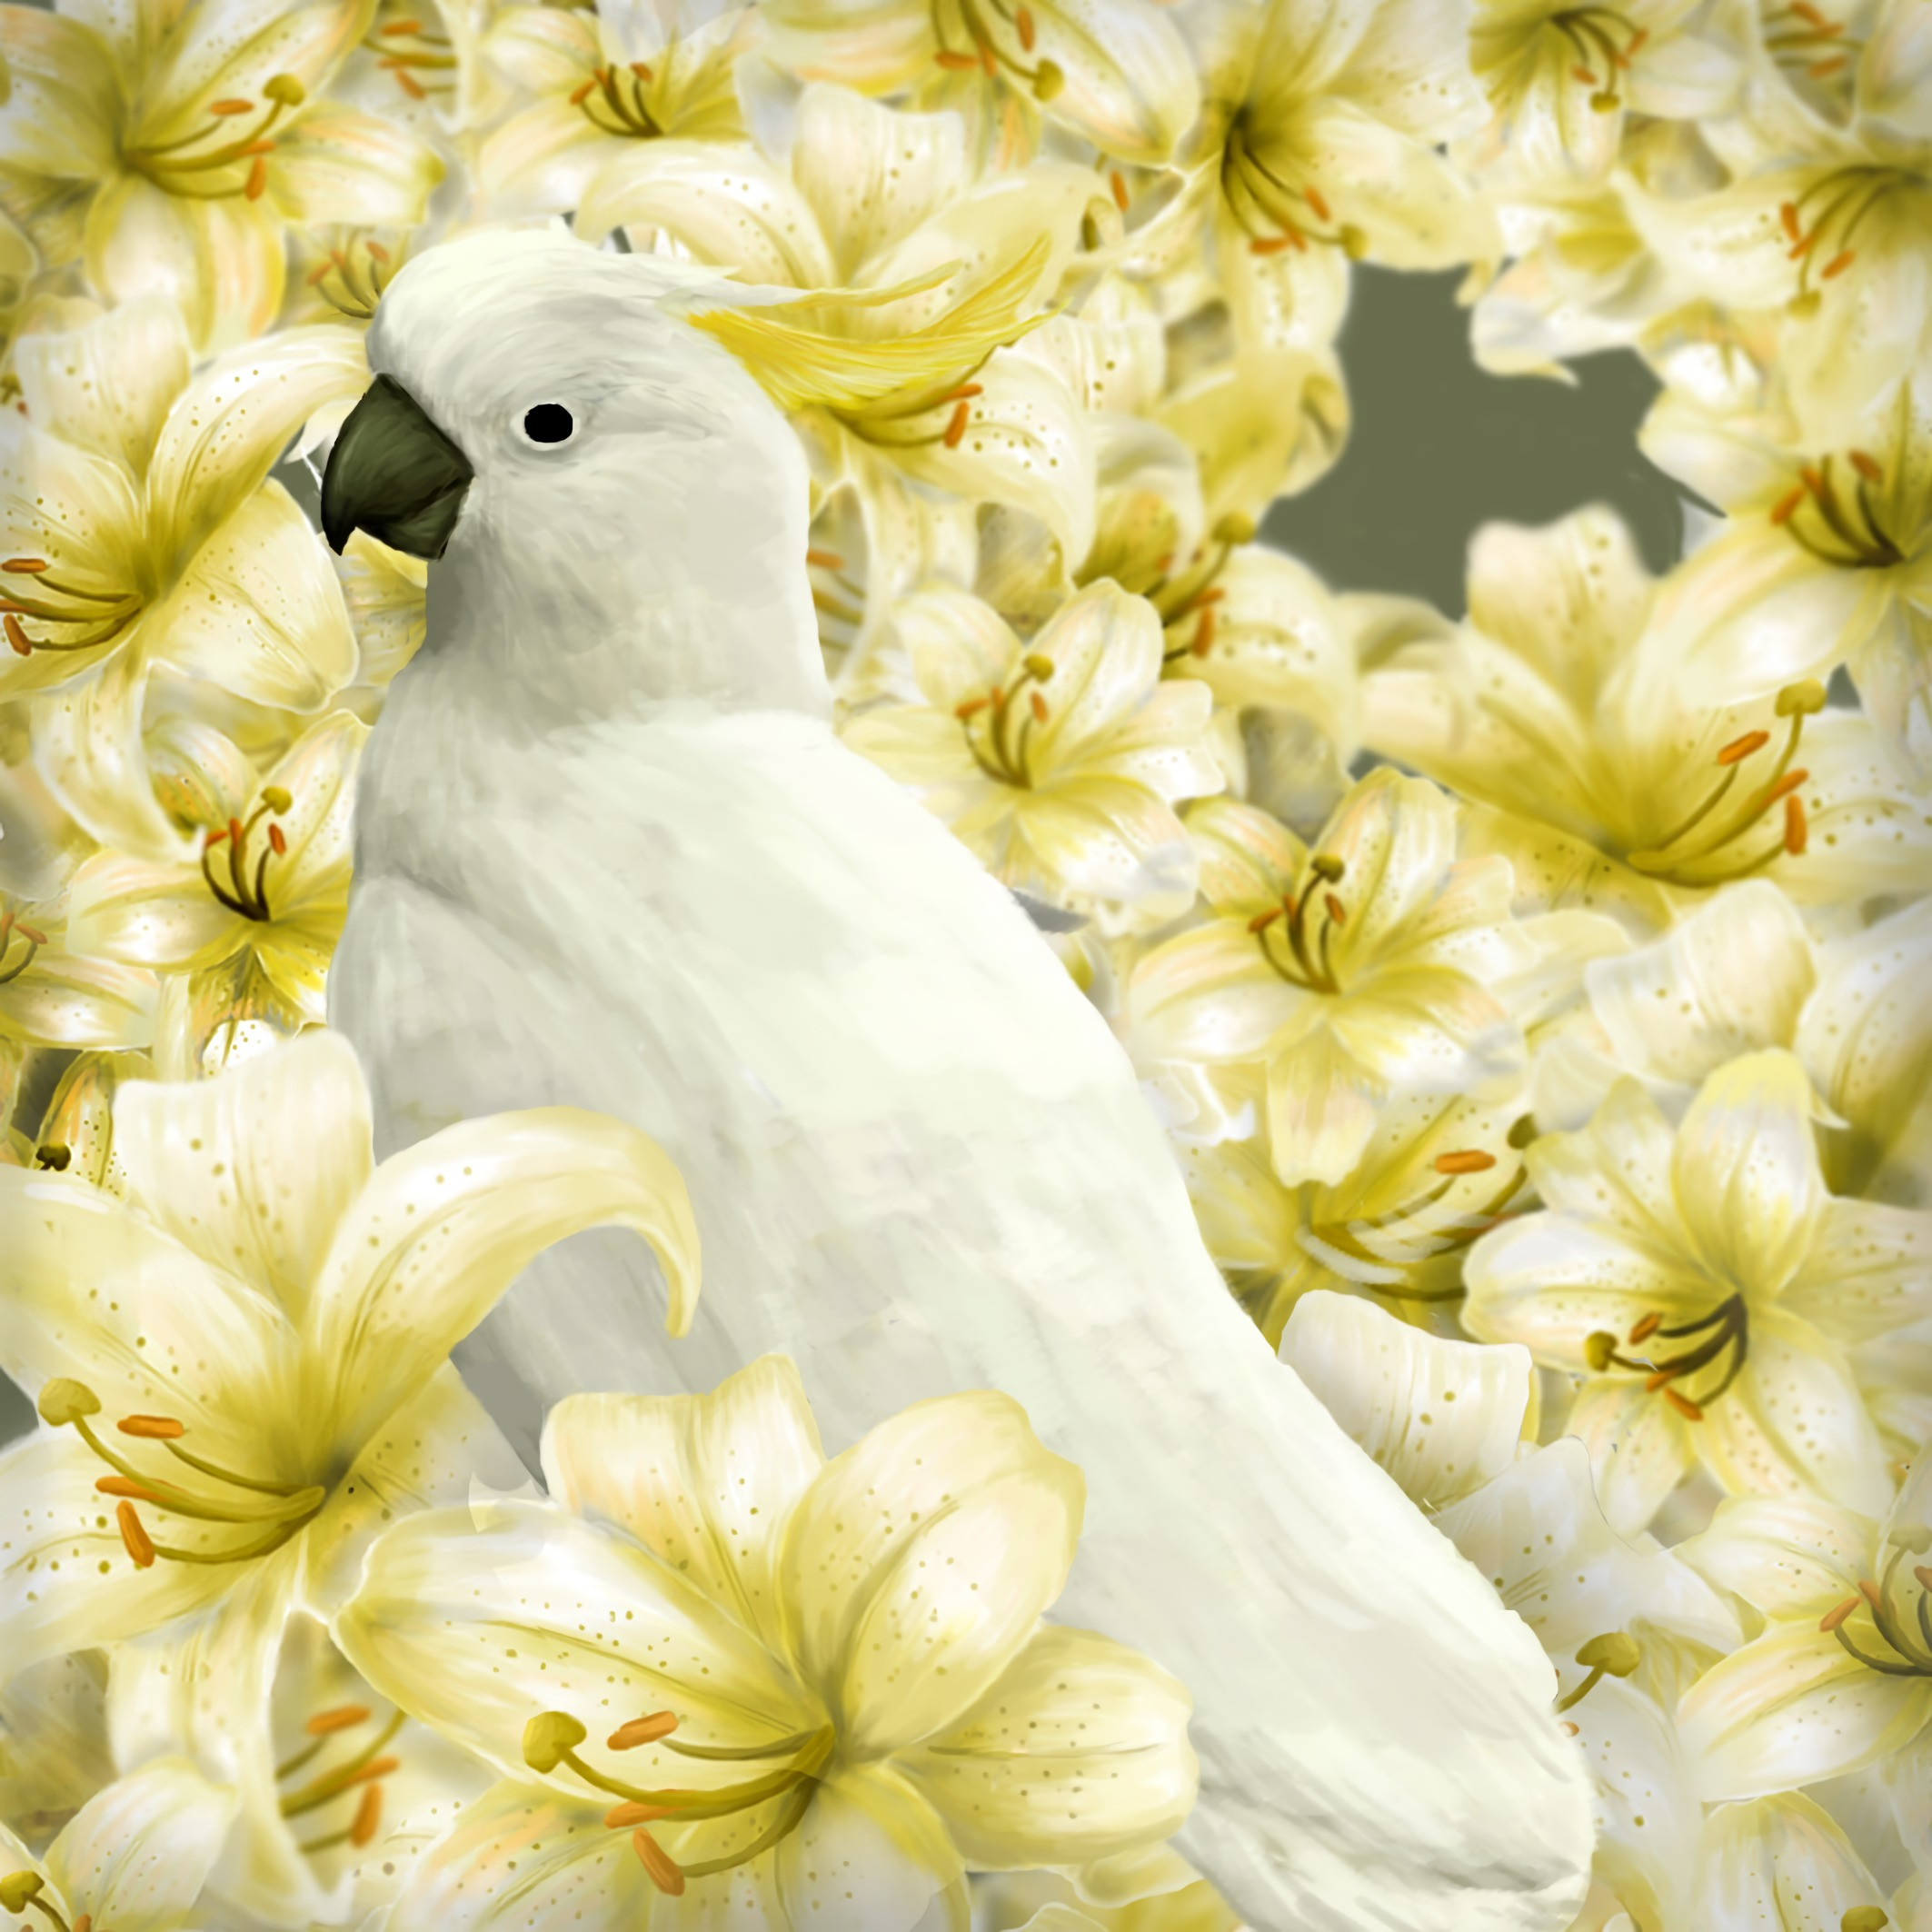 148174 download wallpaper Art, Parrots, Lilies, Bird screensavers and pictures for free